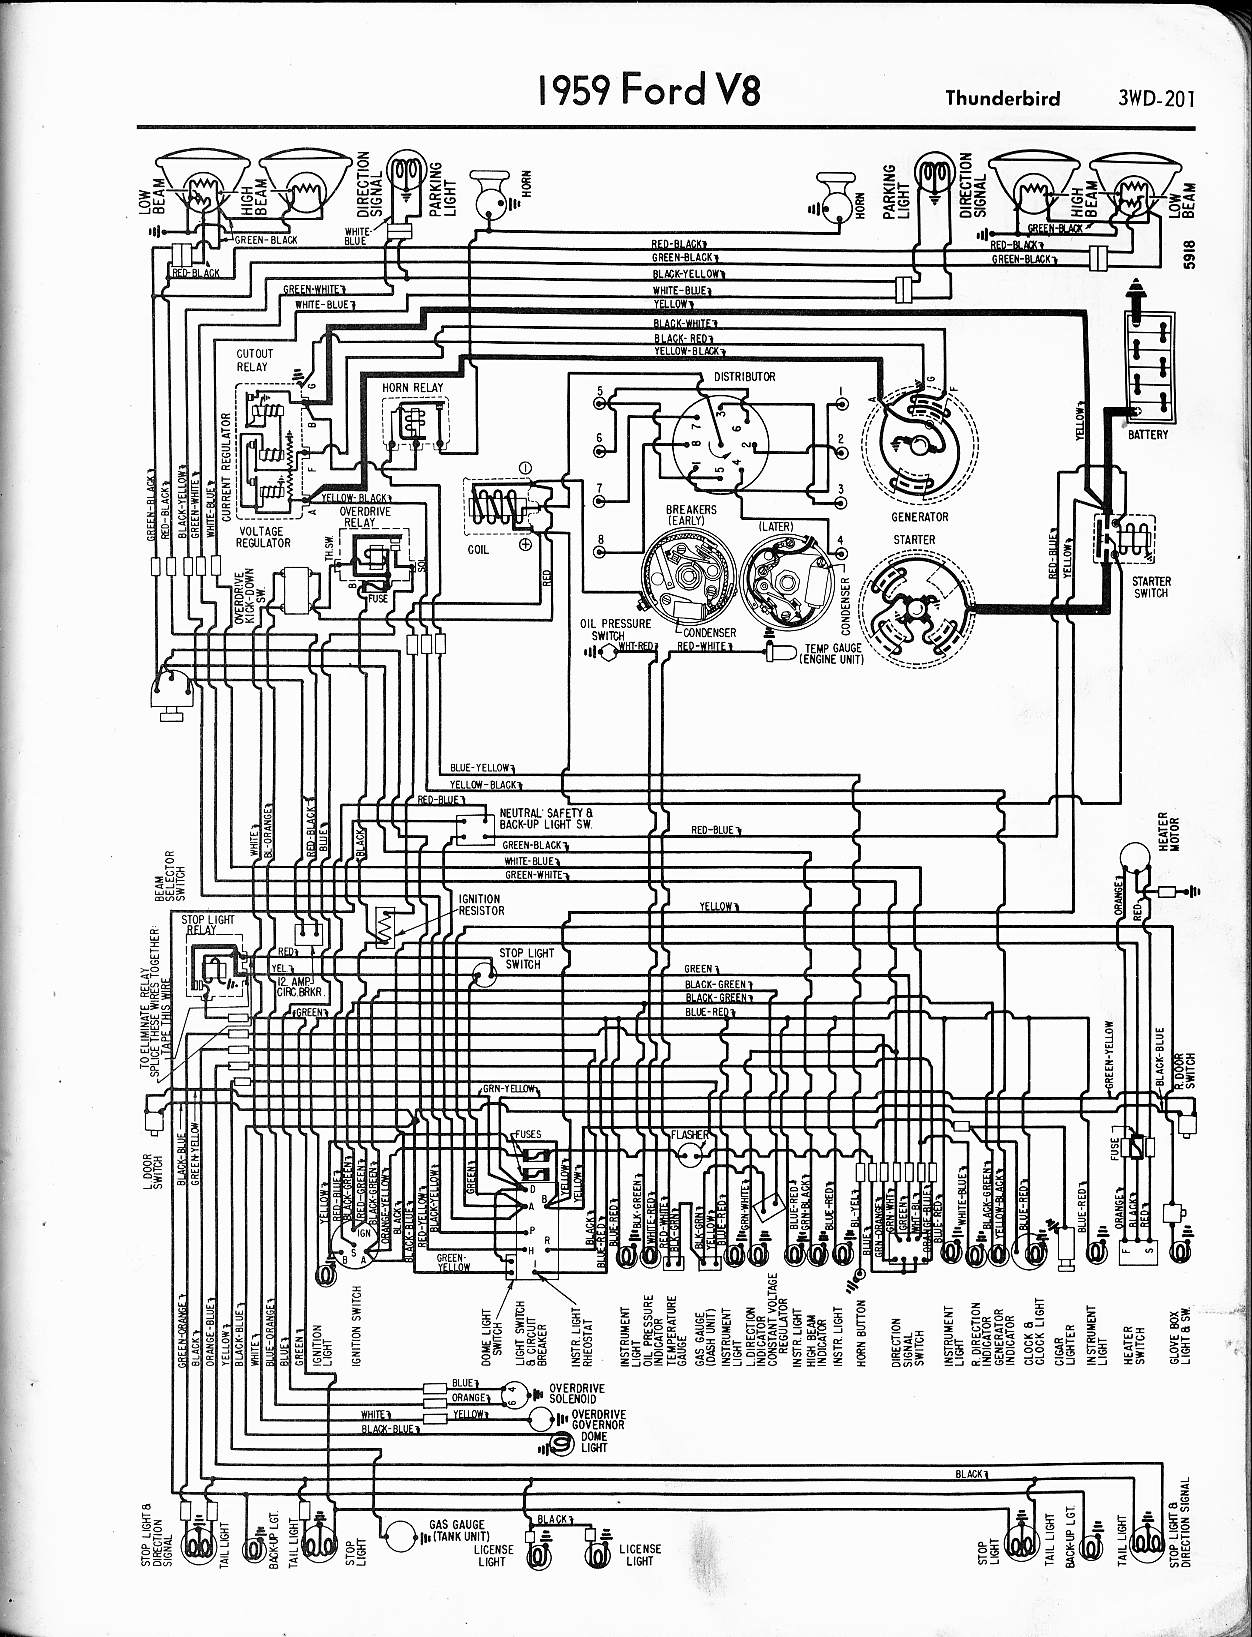 1972 ford ranchero wiring diagram wiring diagram database rh brandgogo co 1970 Torino 1972 gran torino wiring diagram